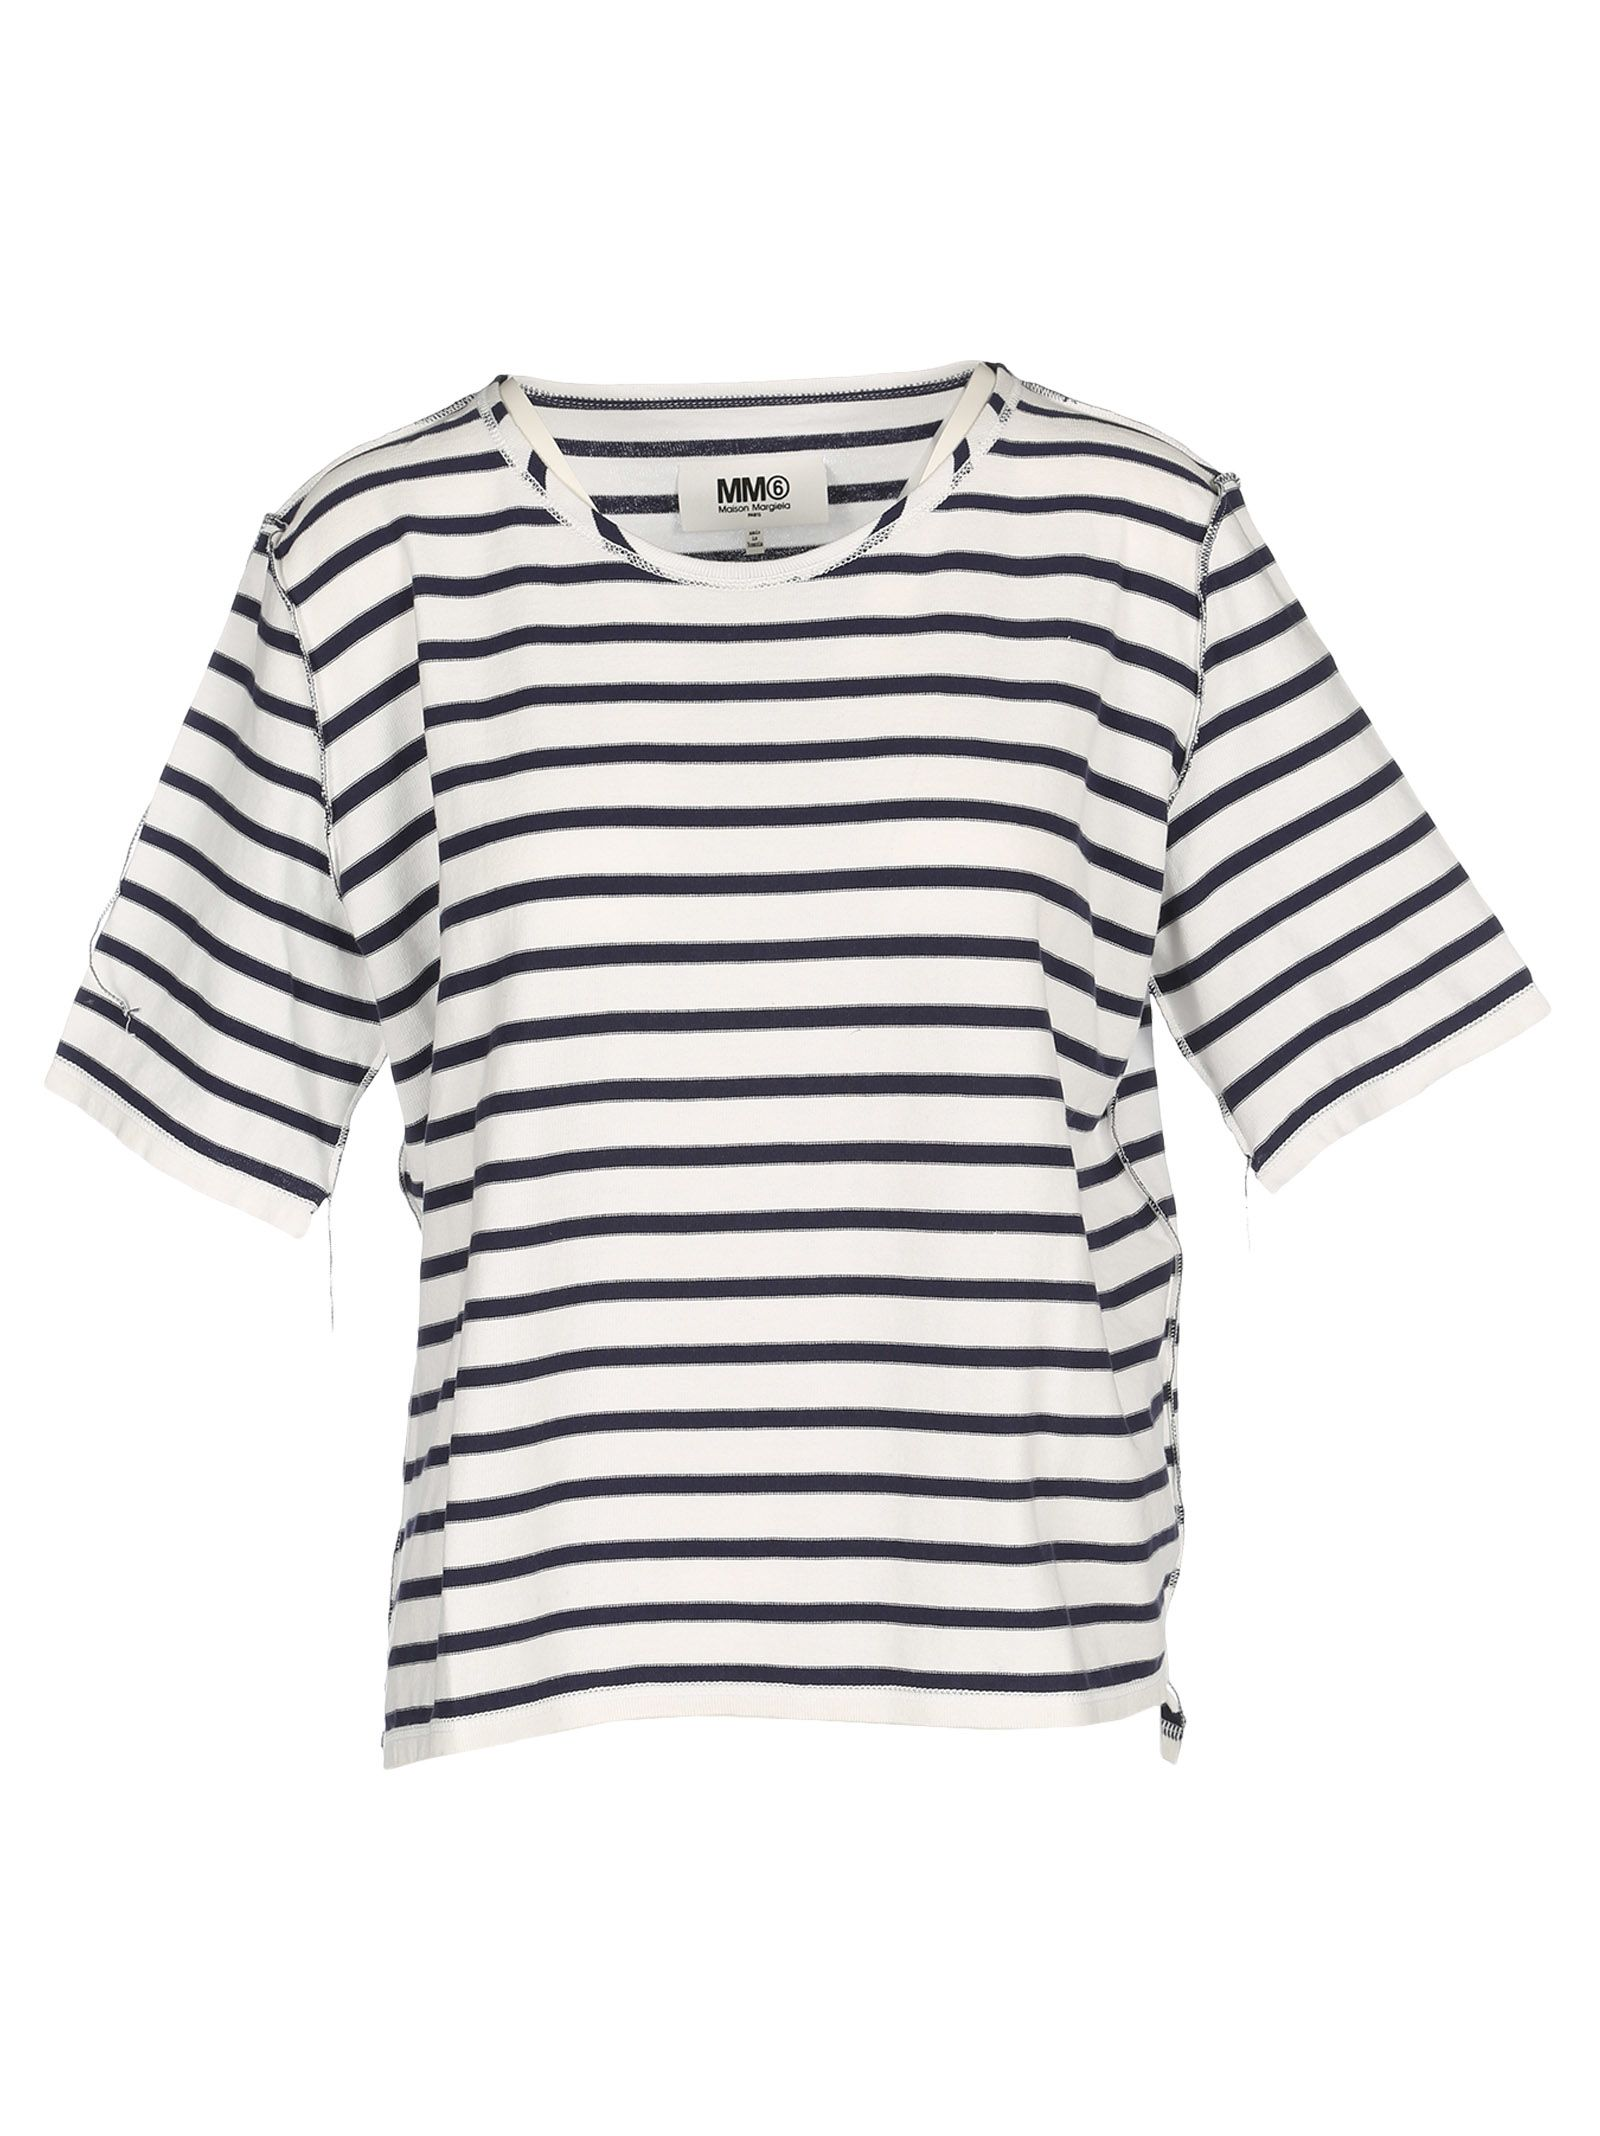 Mm6 Maison Margiela Oversized Striped T-shirt